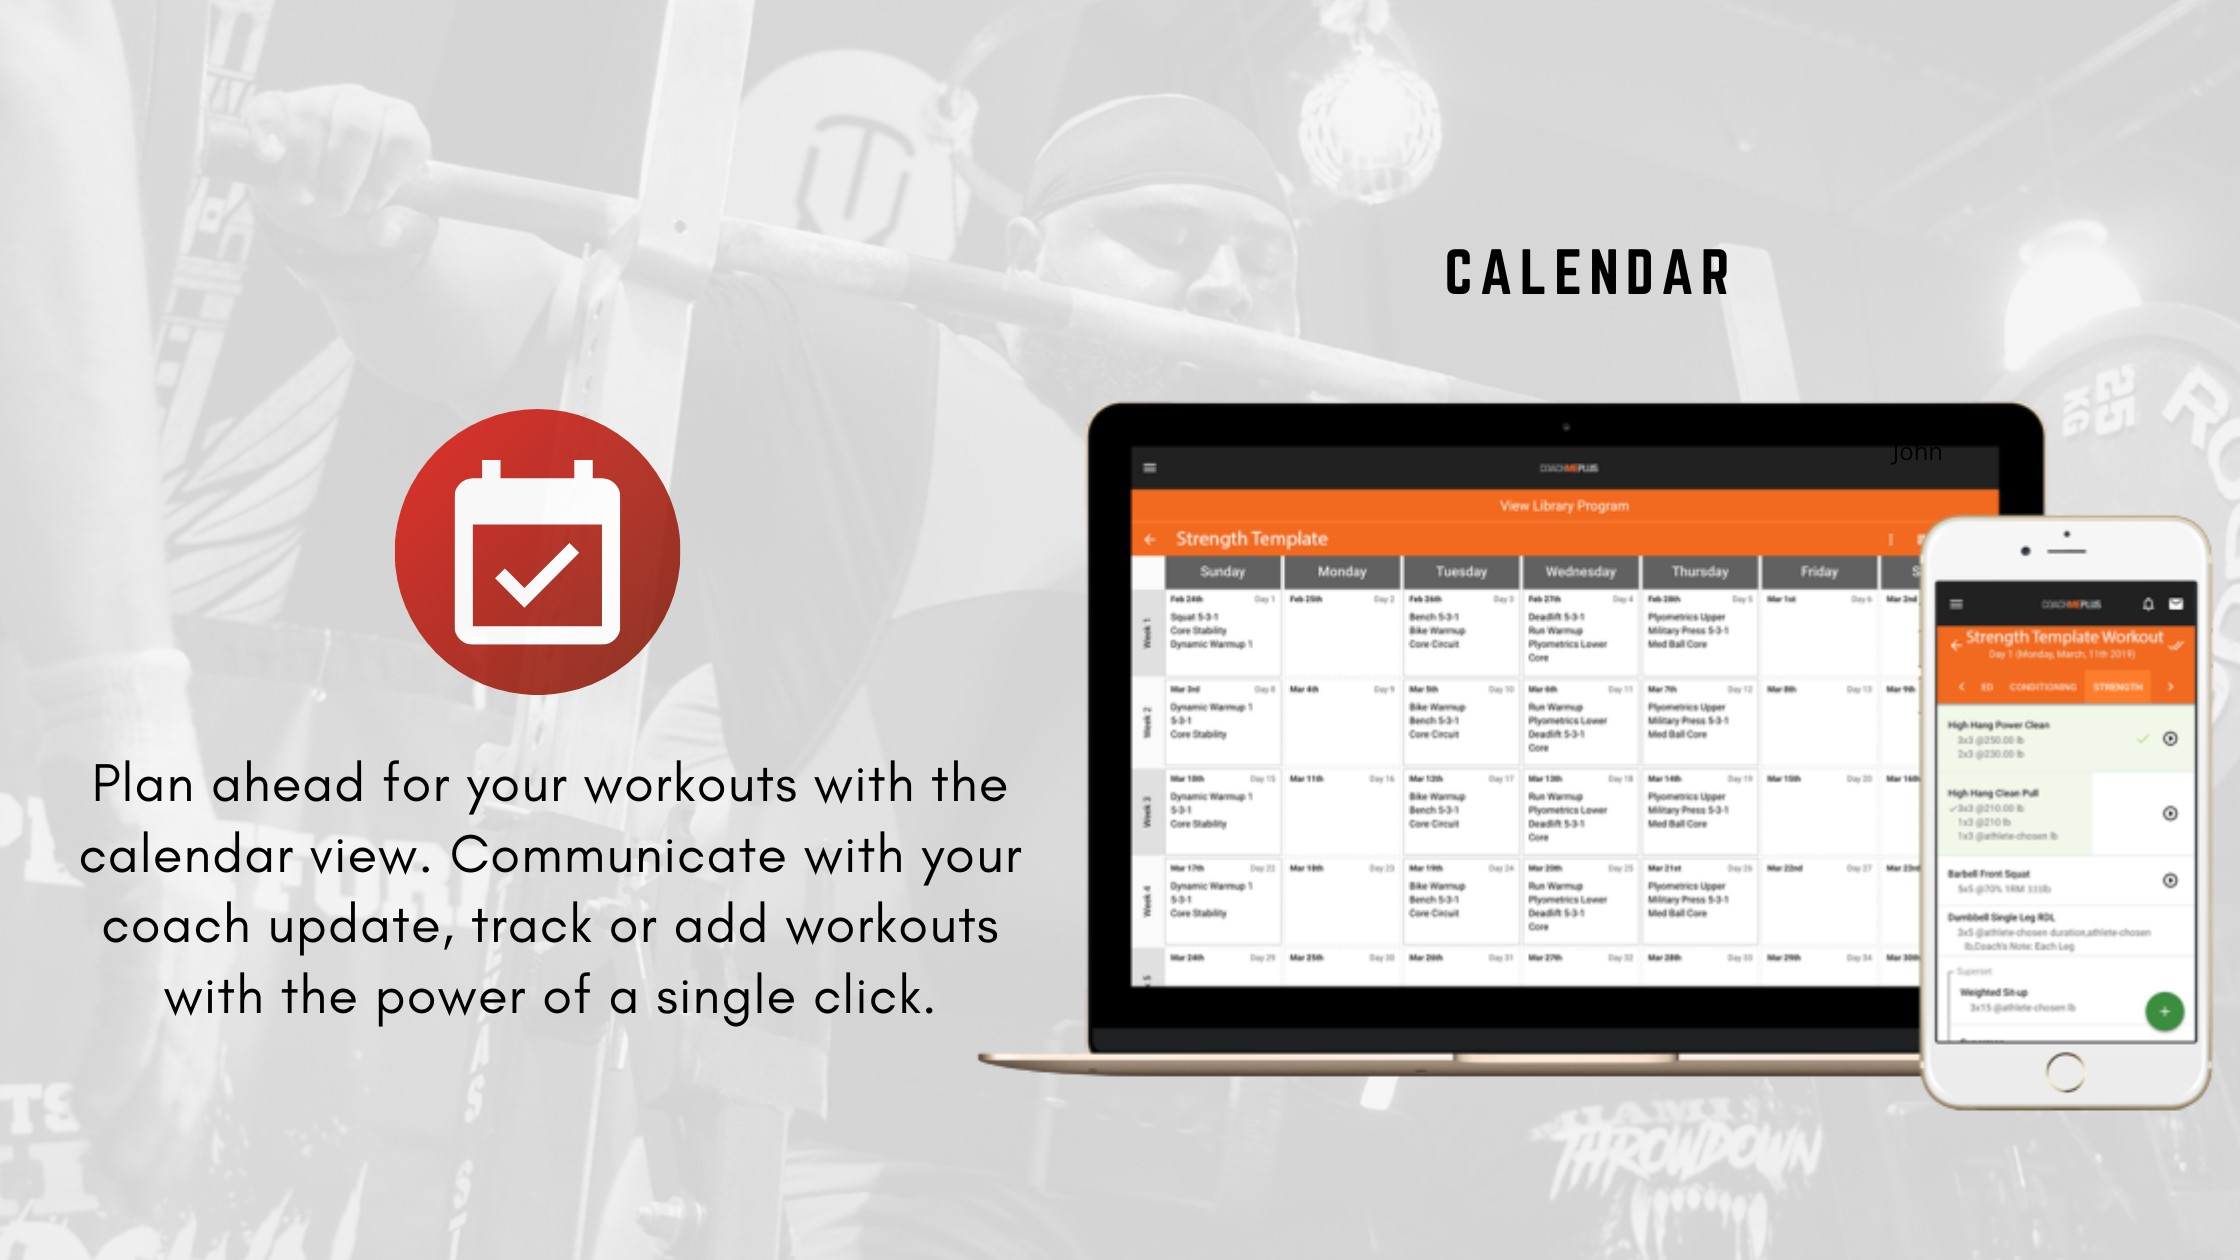 Plan your workouts ahead of time